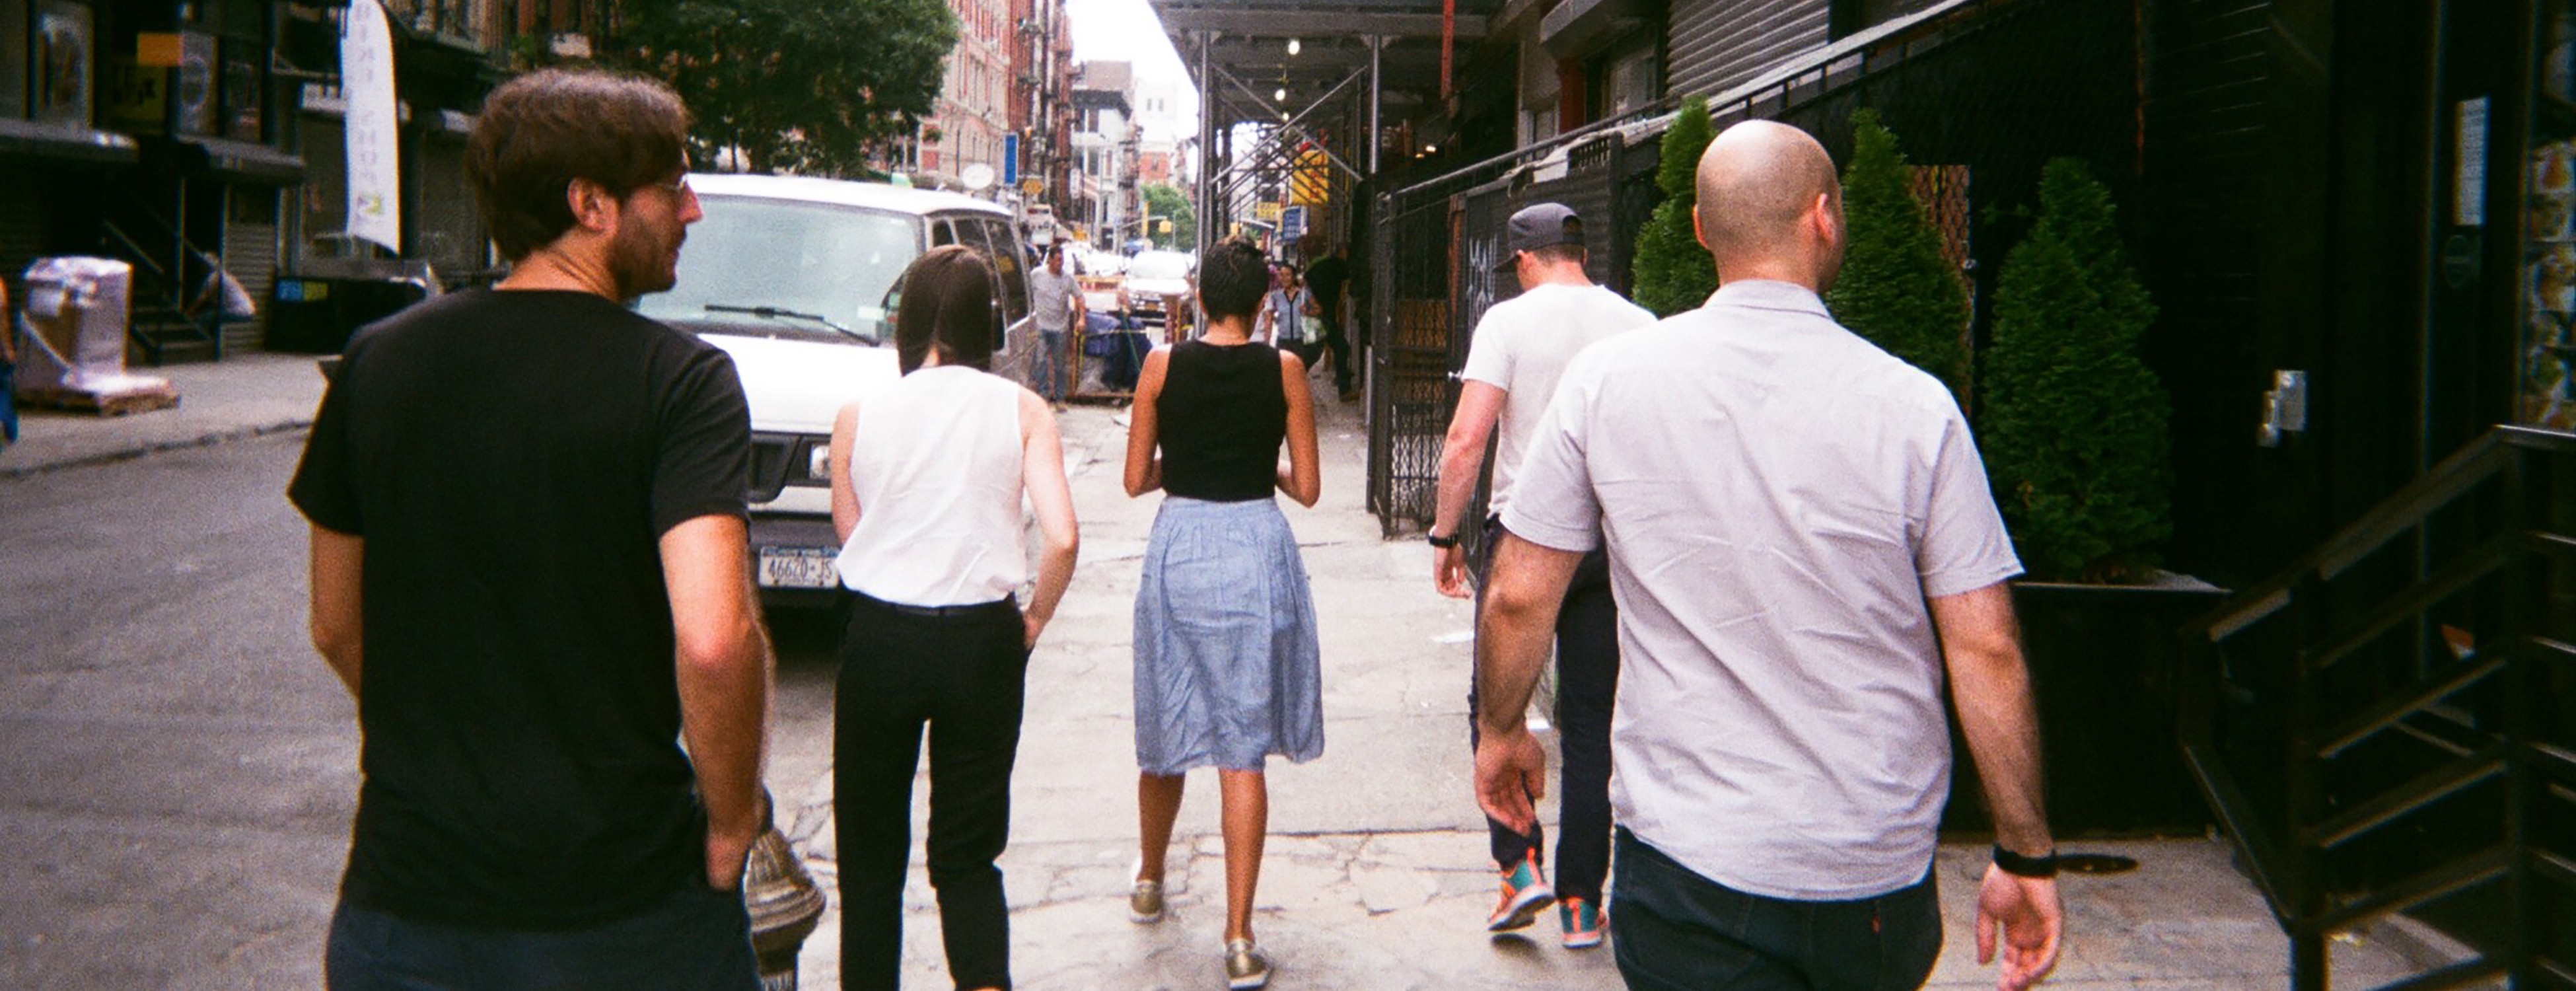 Dusting off the Disposable Camera - Coalesce Thought Shop